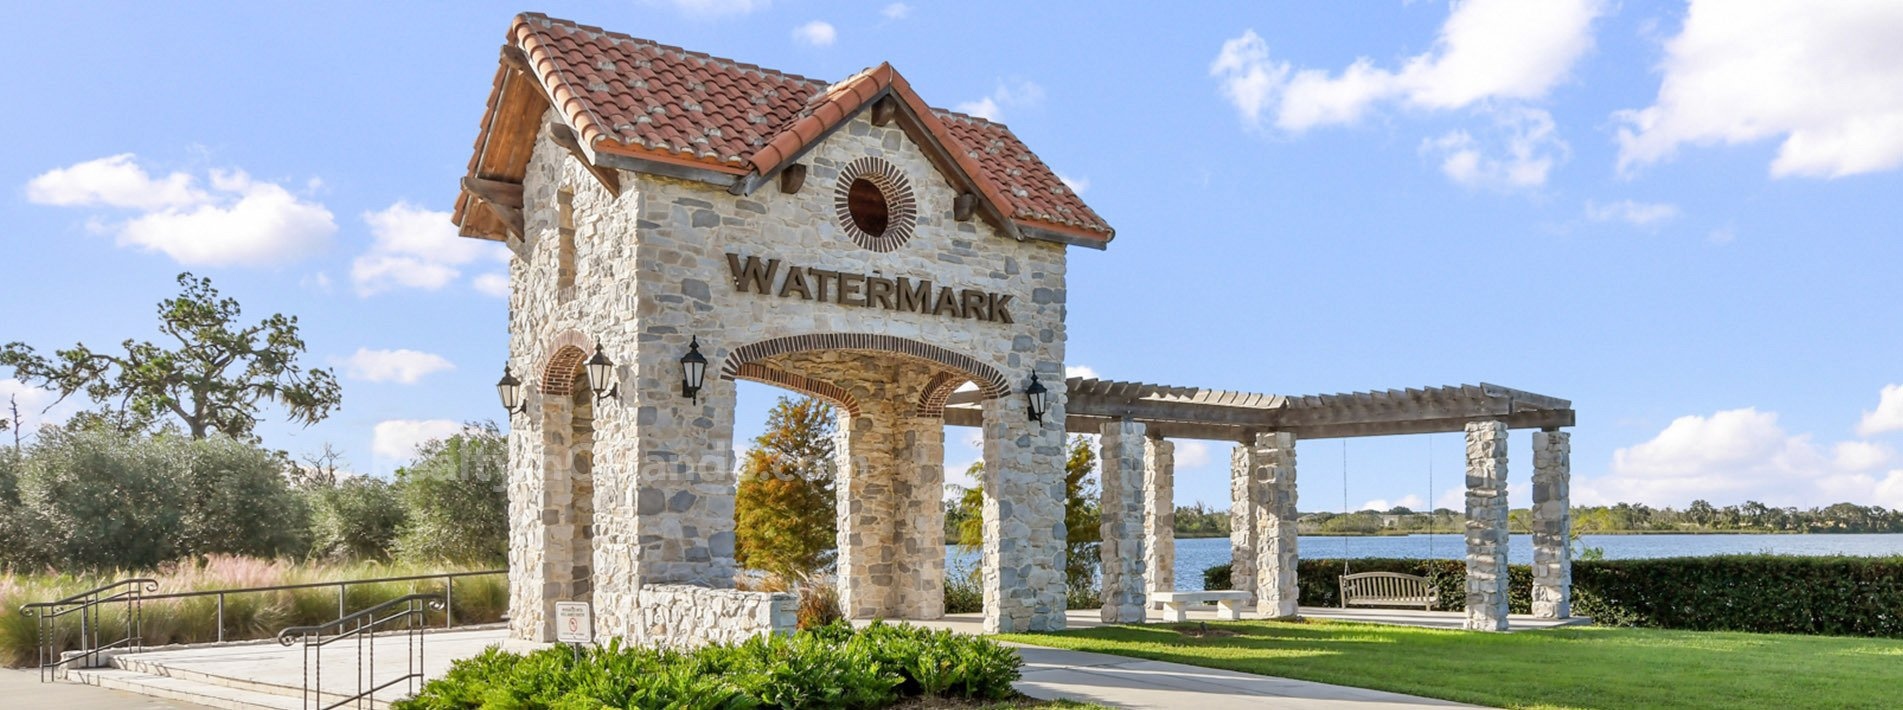 Watermark Winter Garden Real Estate